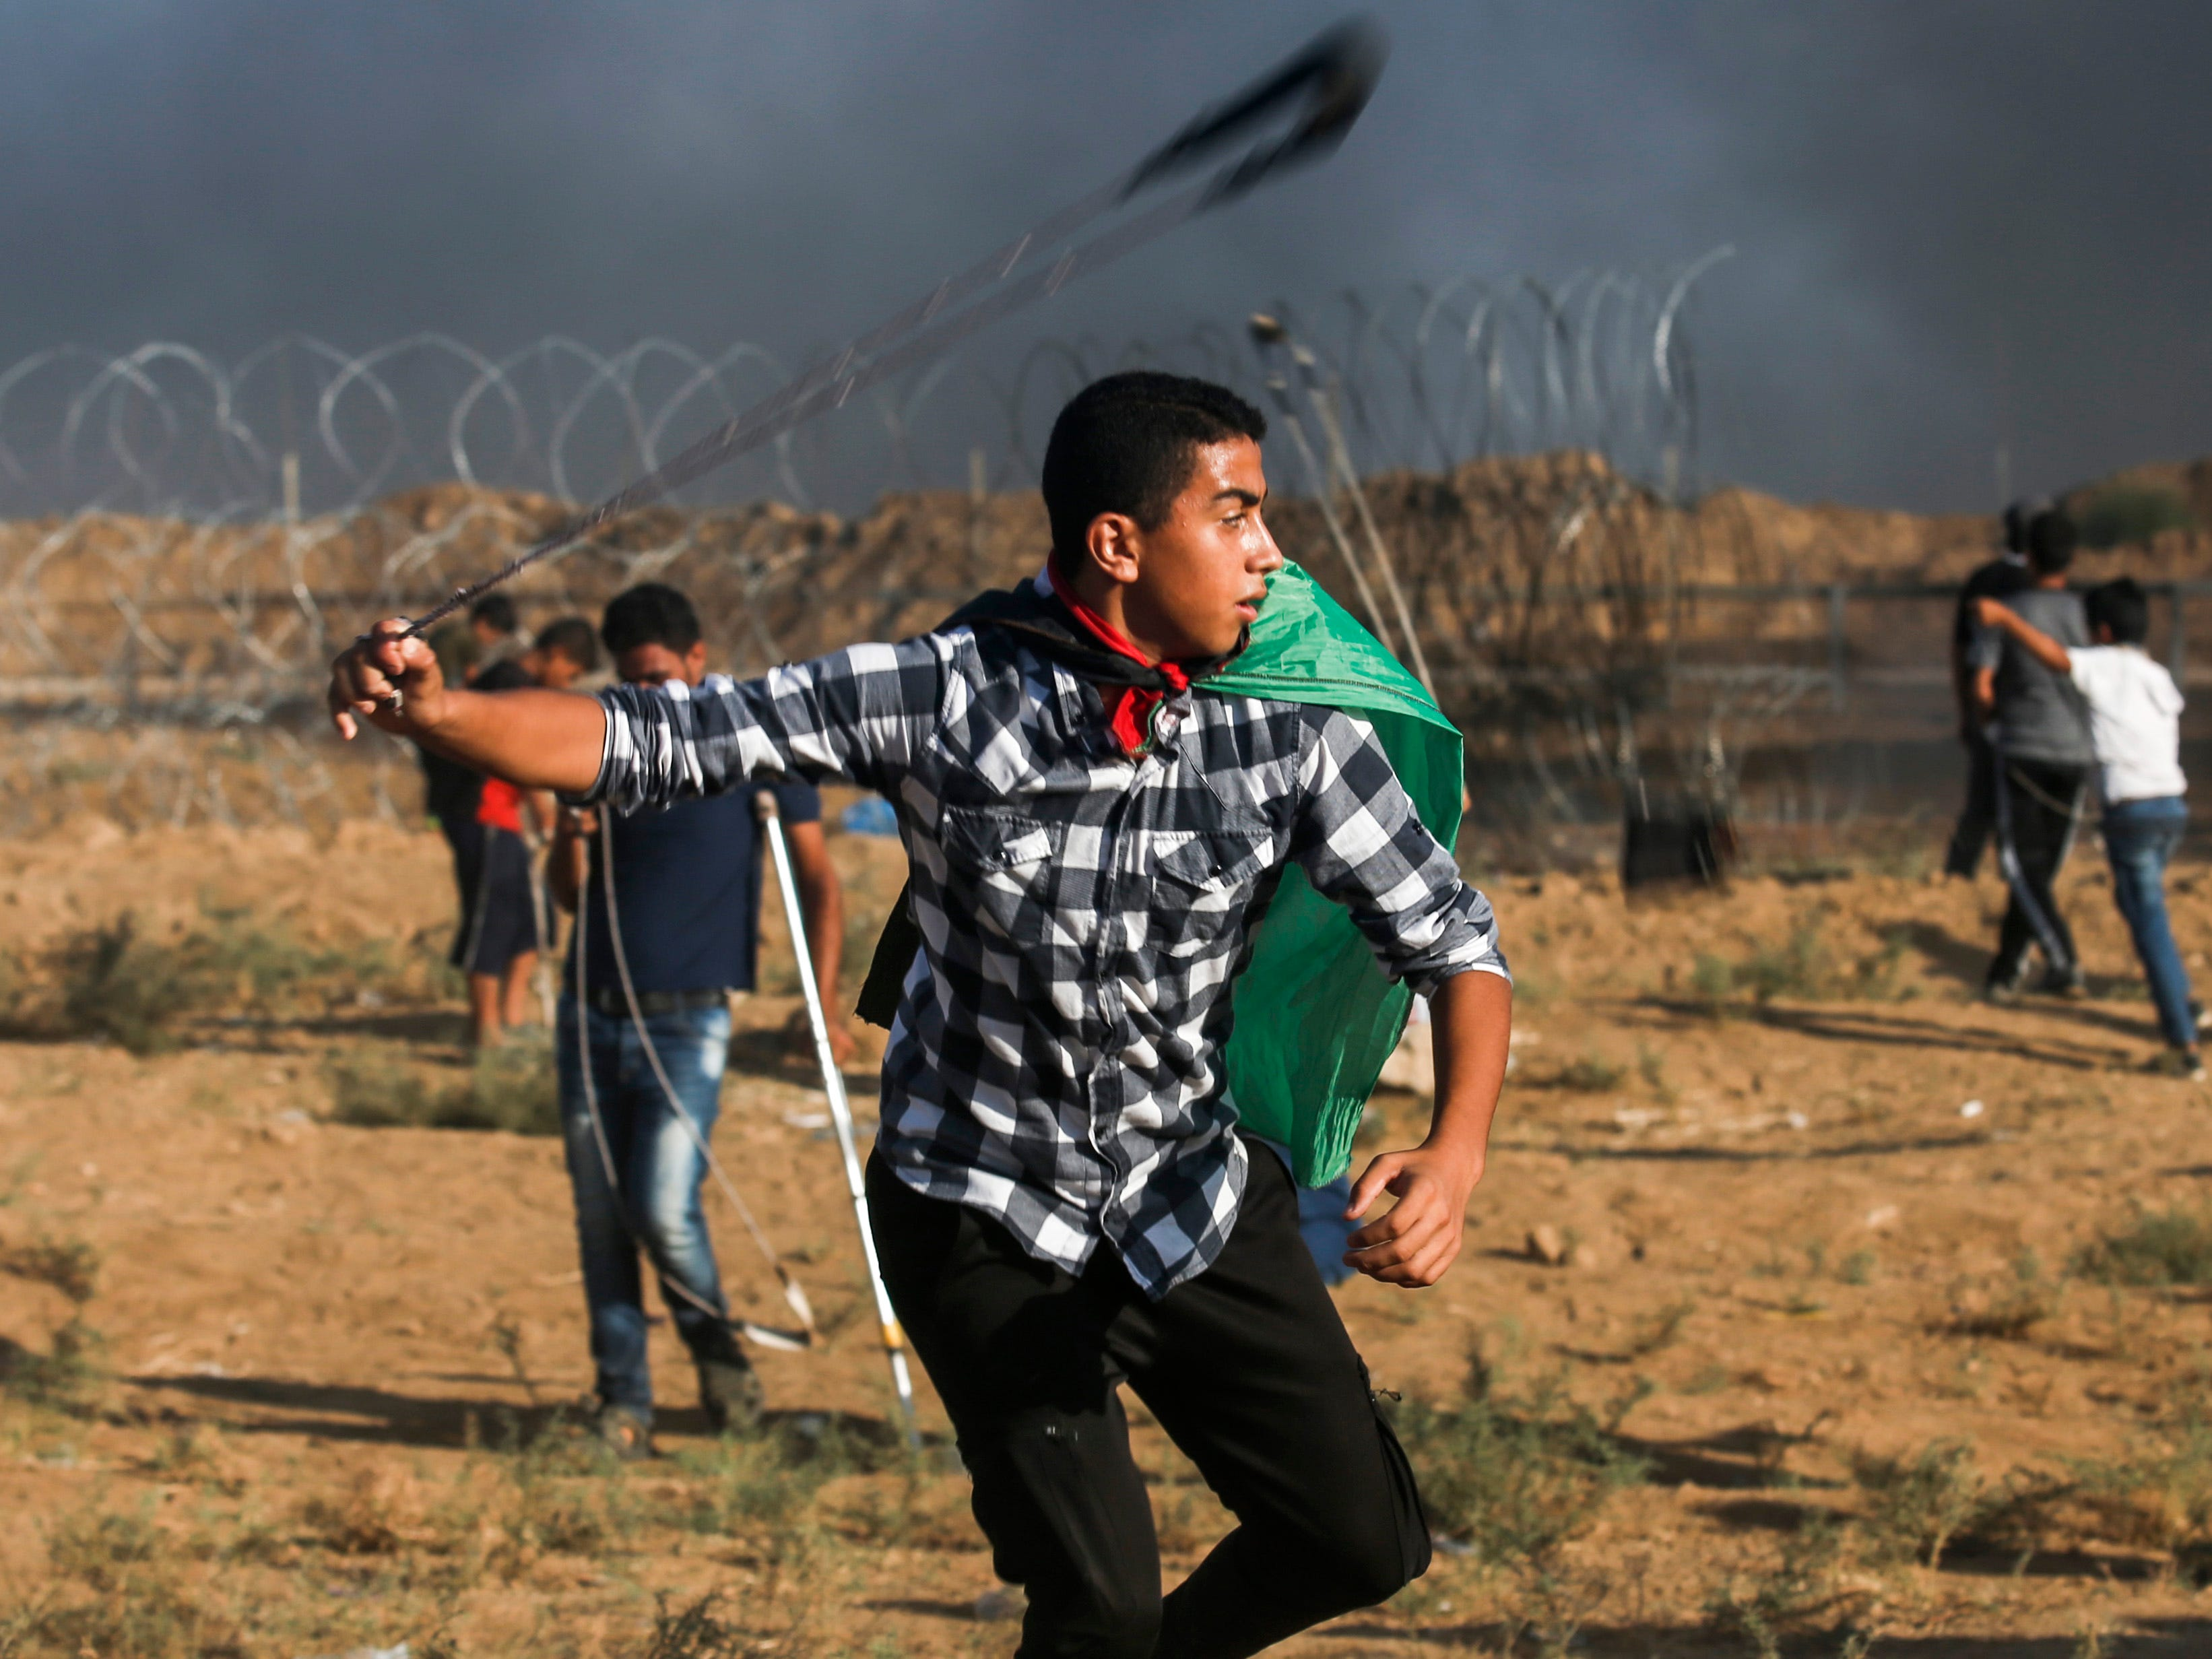 A protester wearing a Palestinian flag uses a slingshot to hurl stones at Israeli forces during clashes following a demonstration at the Israel-Gaza border, east of Gaza City in the central Gaza Strip on Sept. 7, 2018.